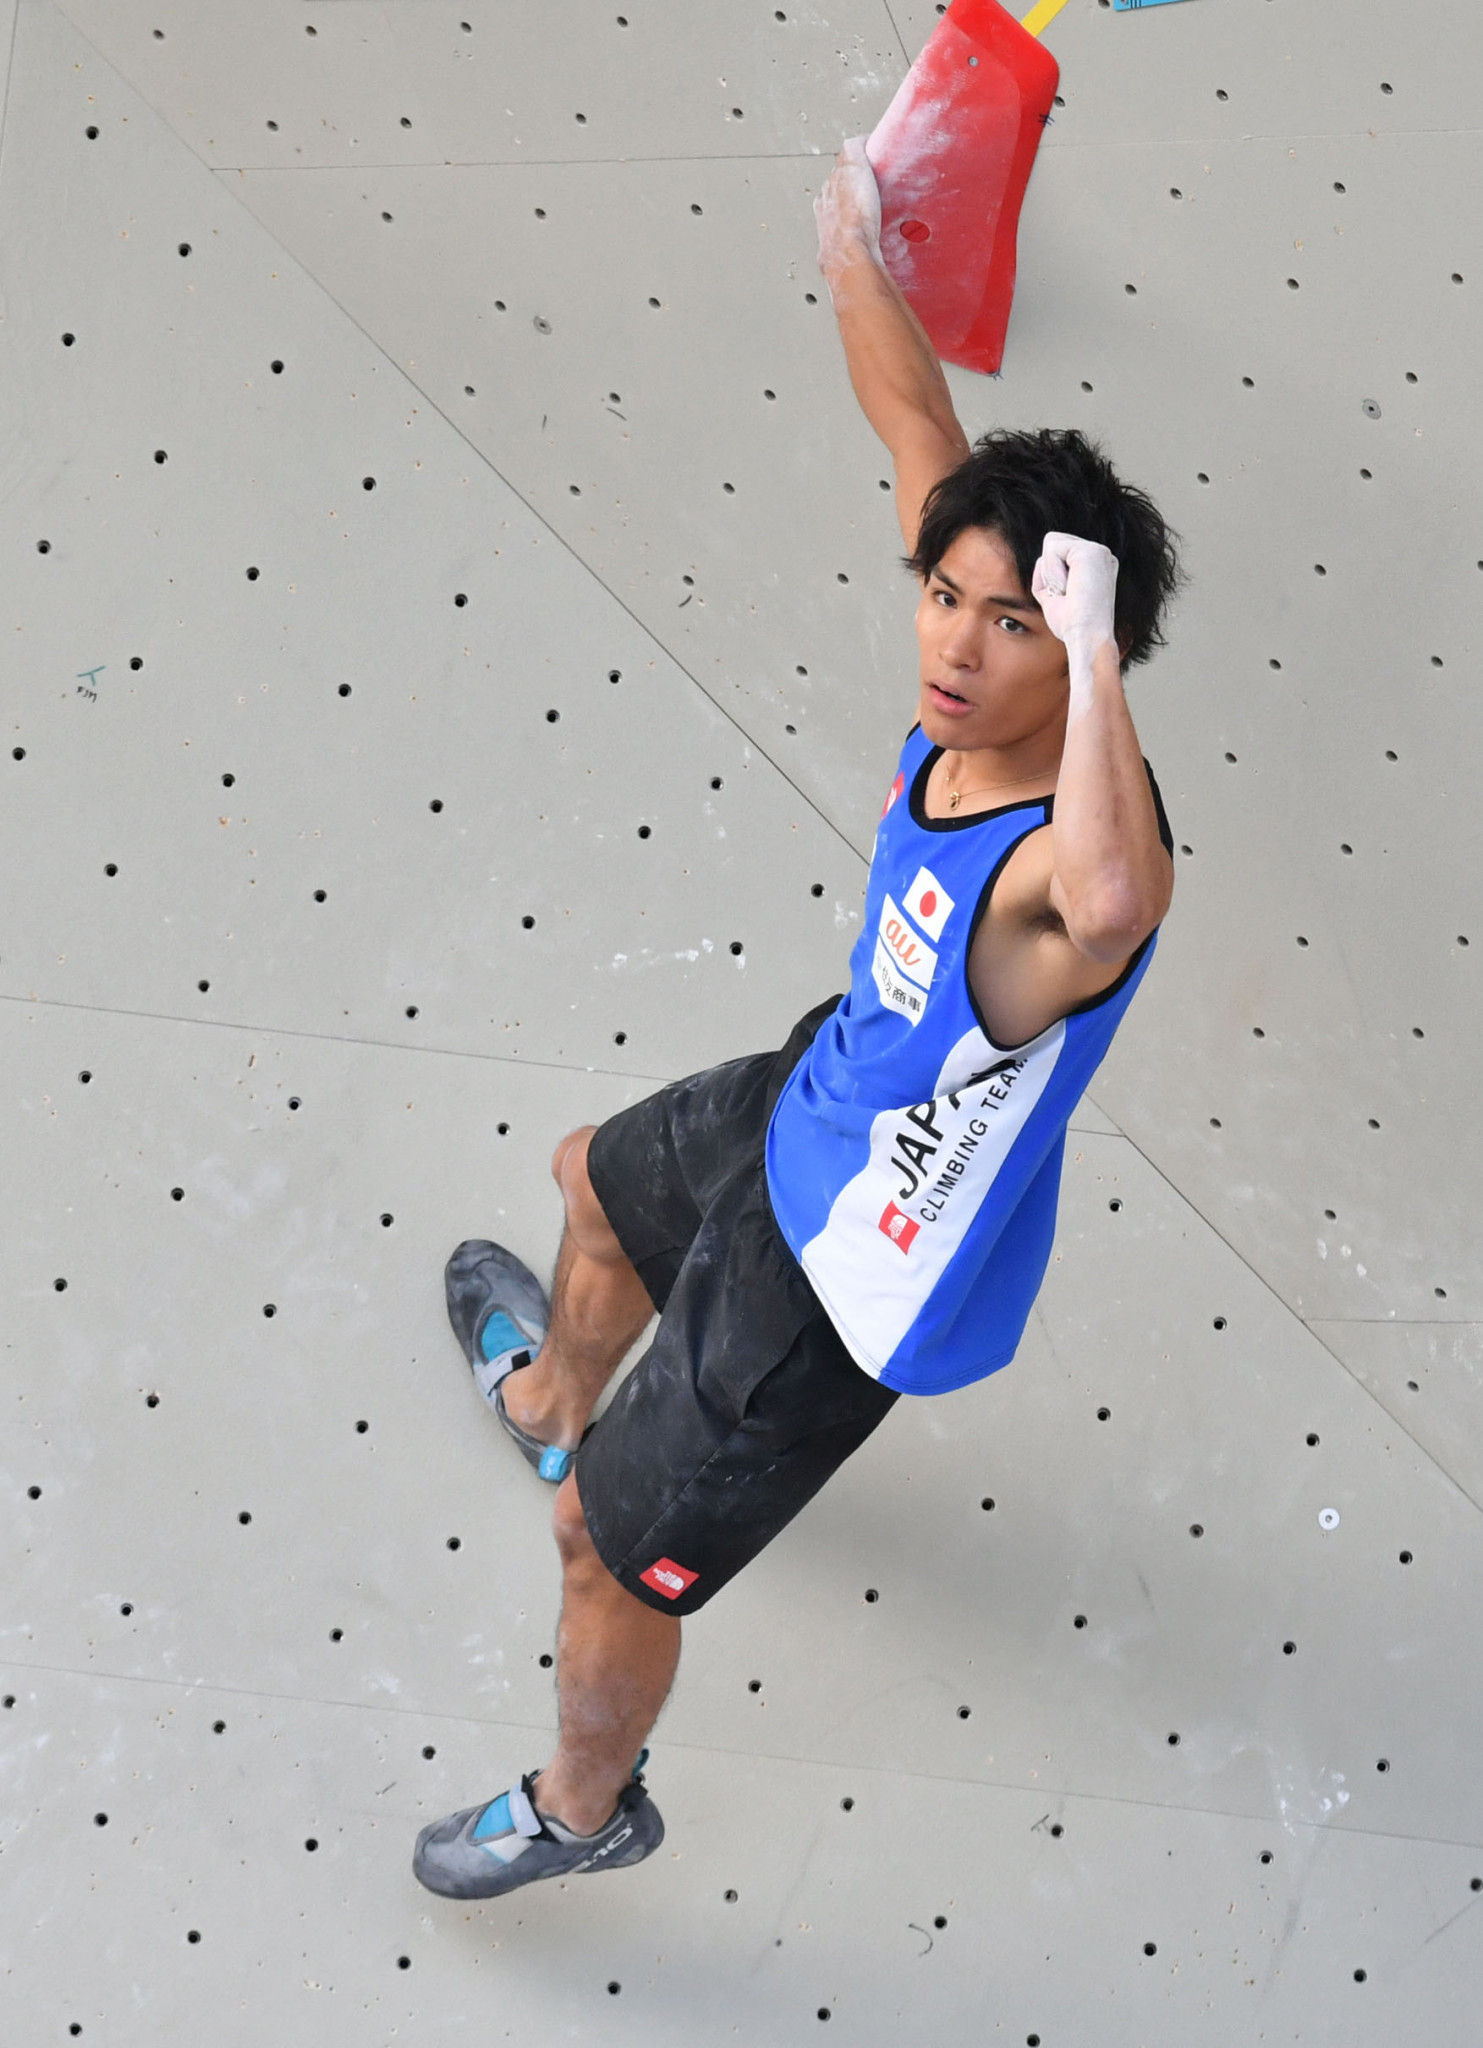 Japan's Tomoa Narasaki won the men's competition at today's IFSC Bouldering World Cup in Wujiang, China ©Getty Images